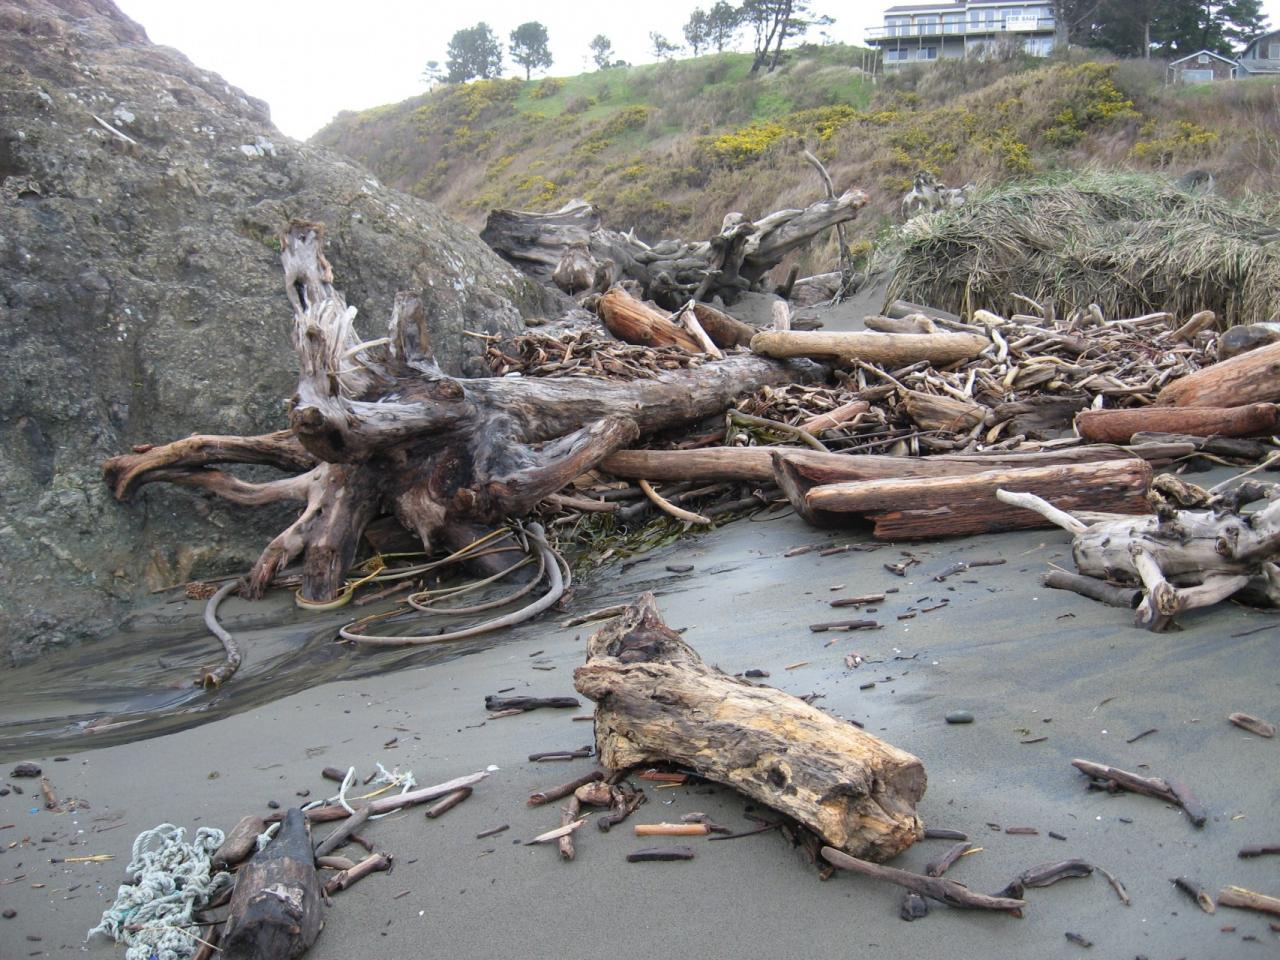 A large amount of driftwood has accumulated this winter, especially around Battle Rock.